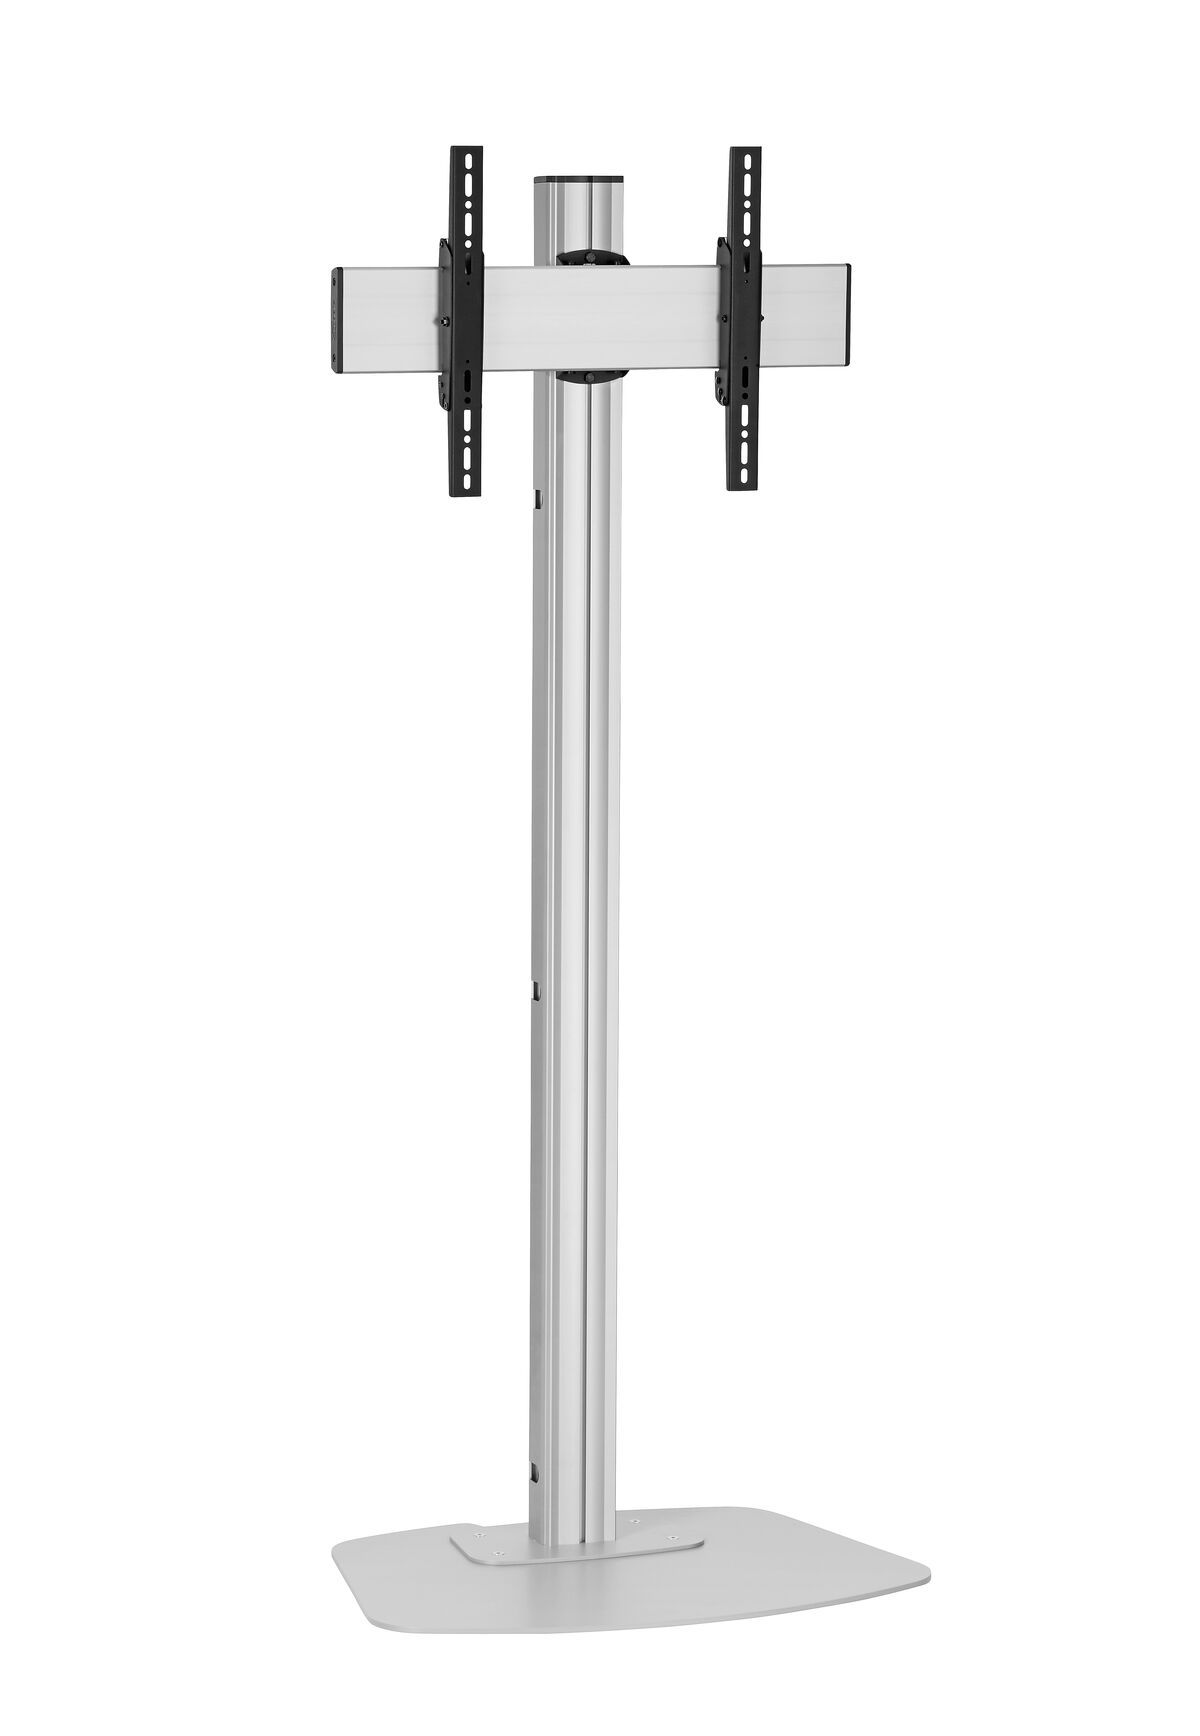 Vogel's F1544S Floor stand - Product